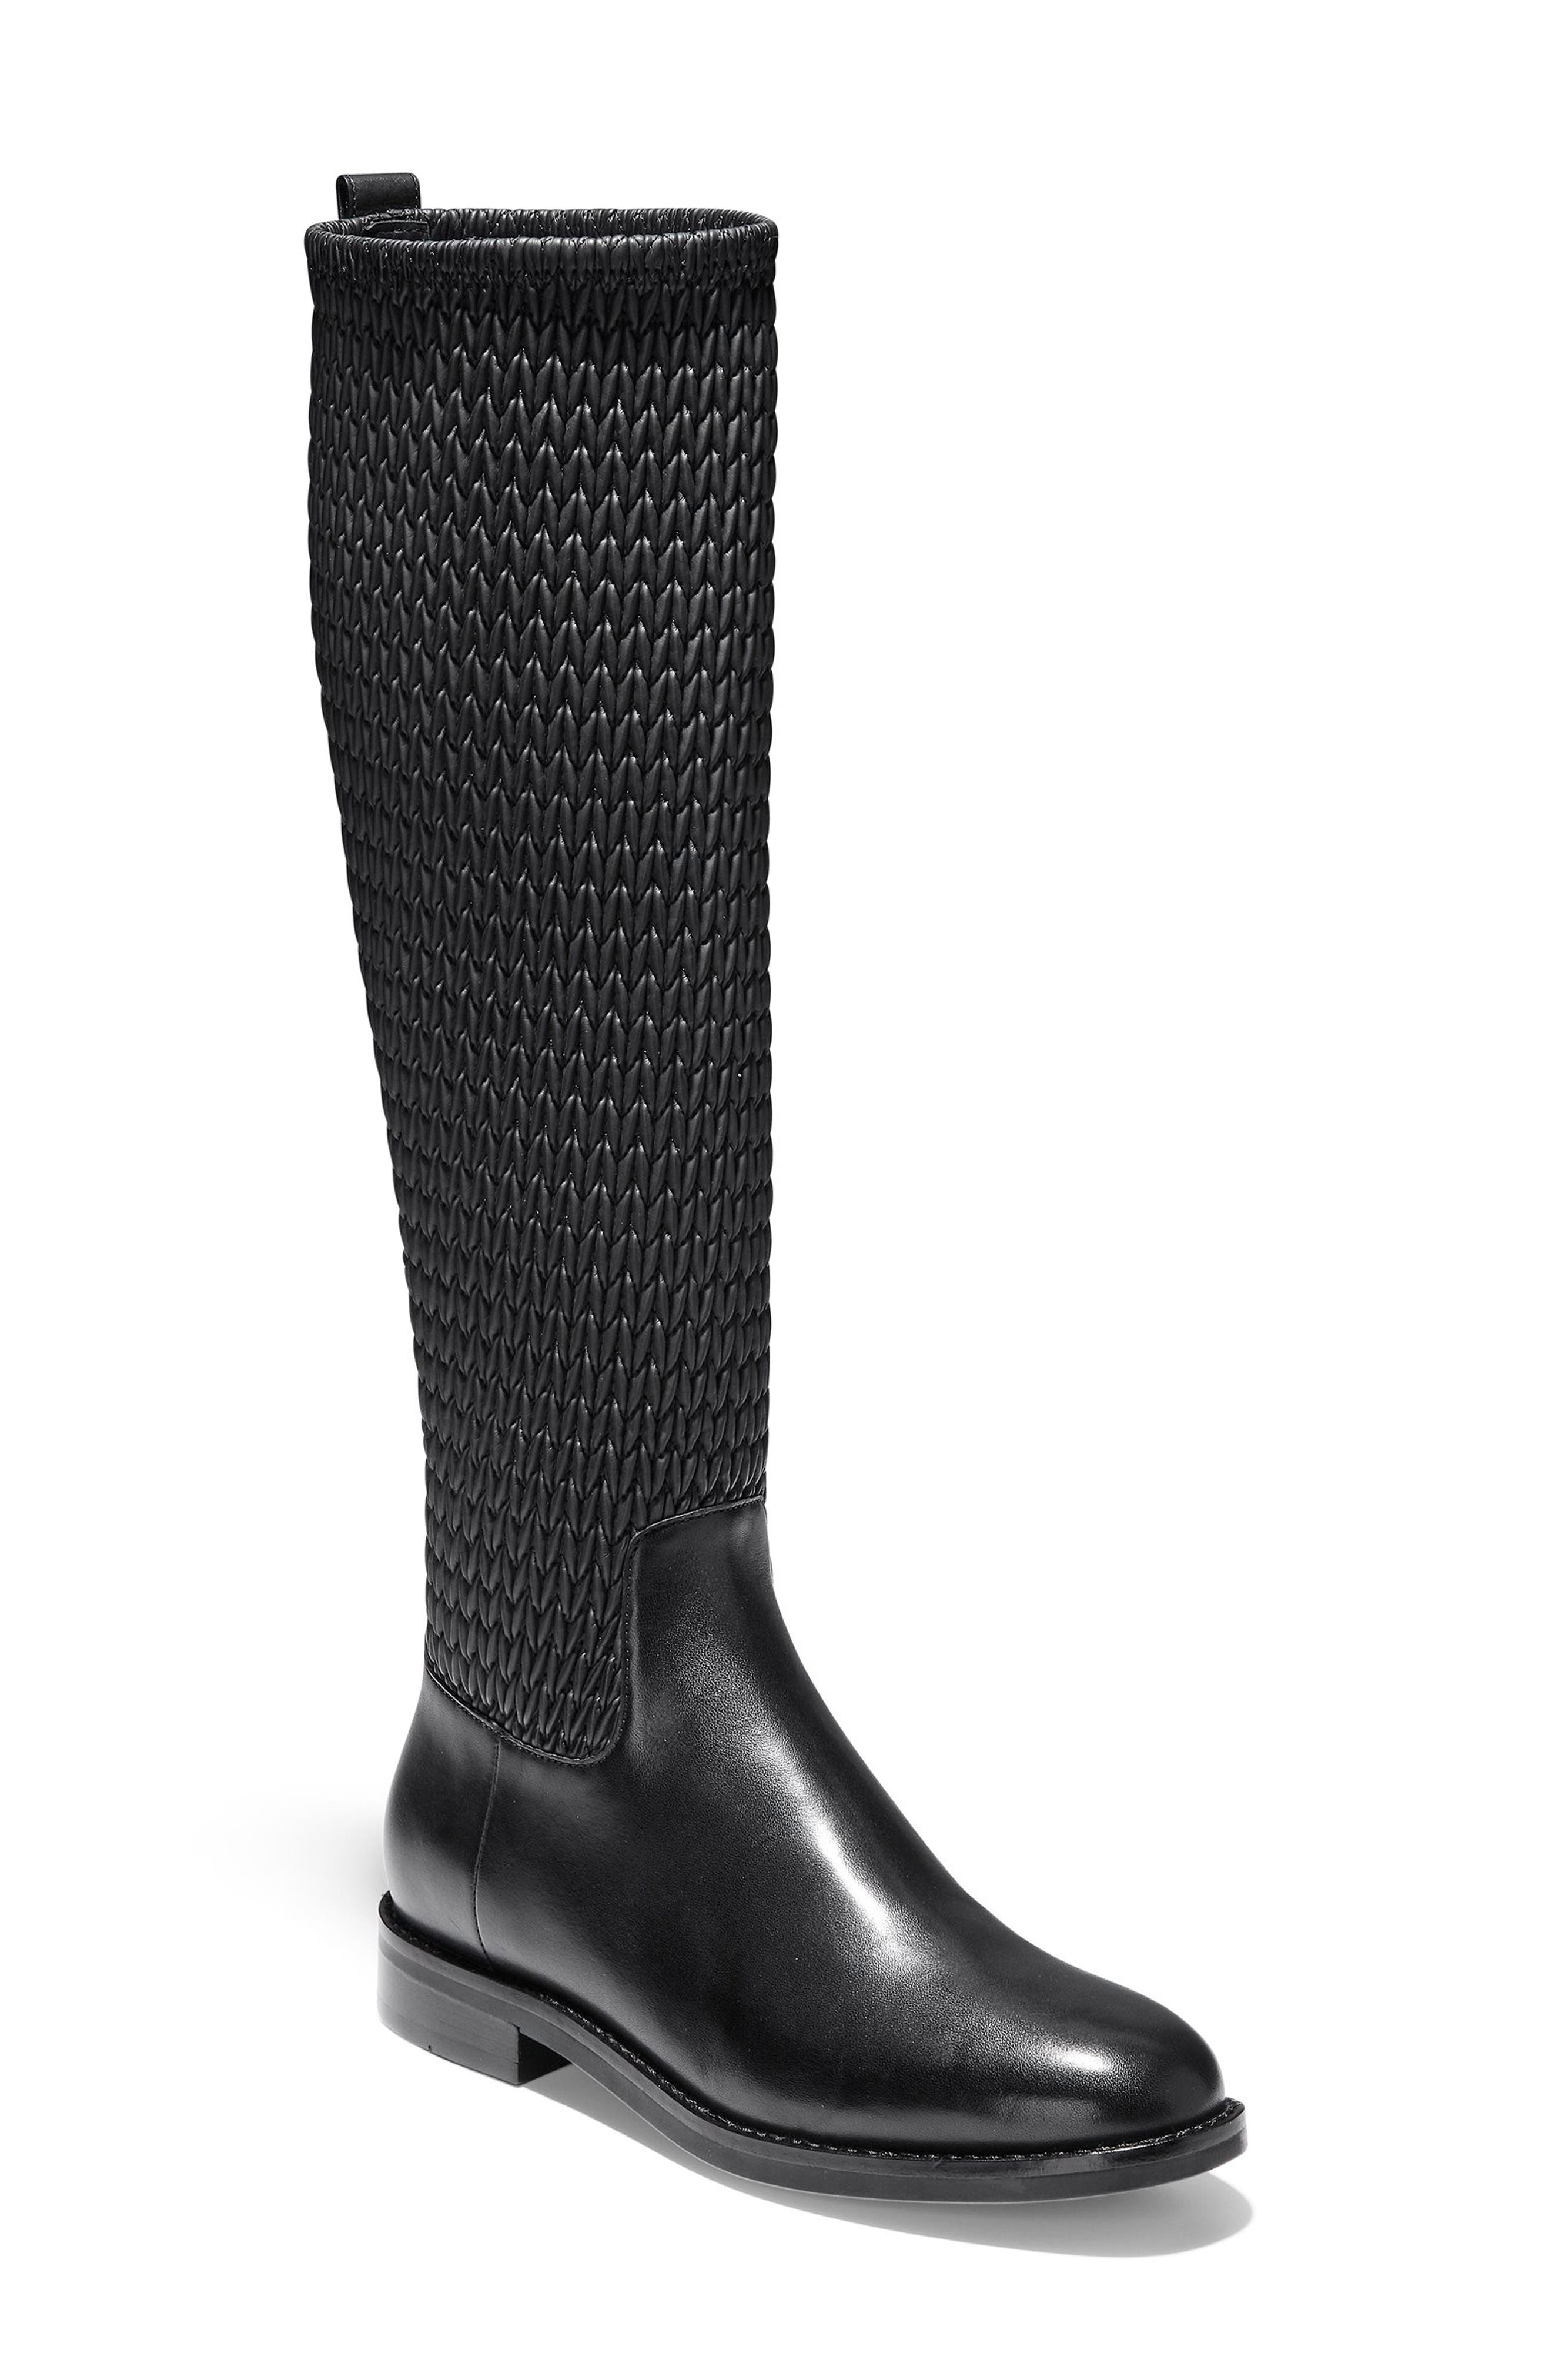 Cole Haan Lexi Grand Knee High Stretch Boot, Black